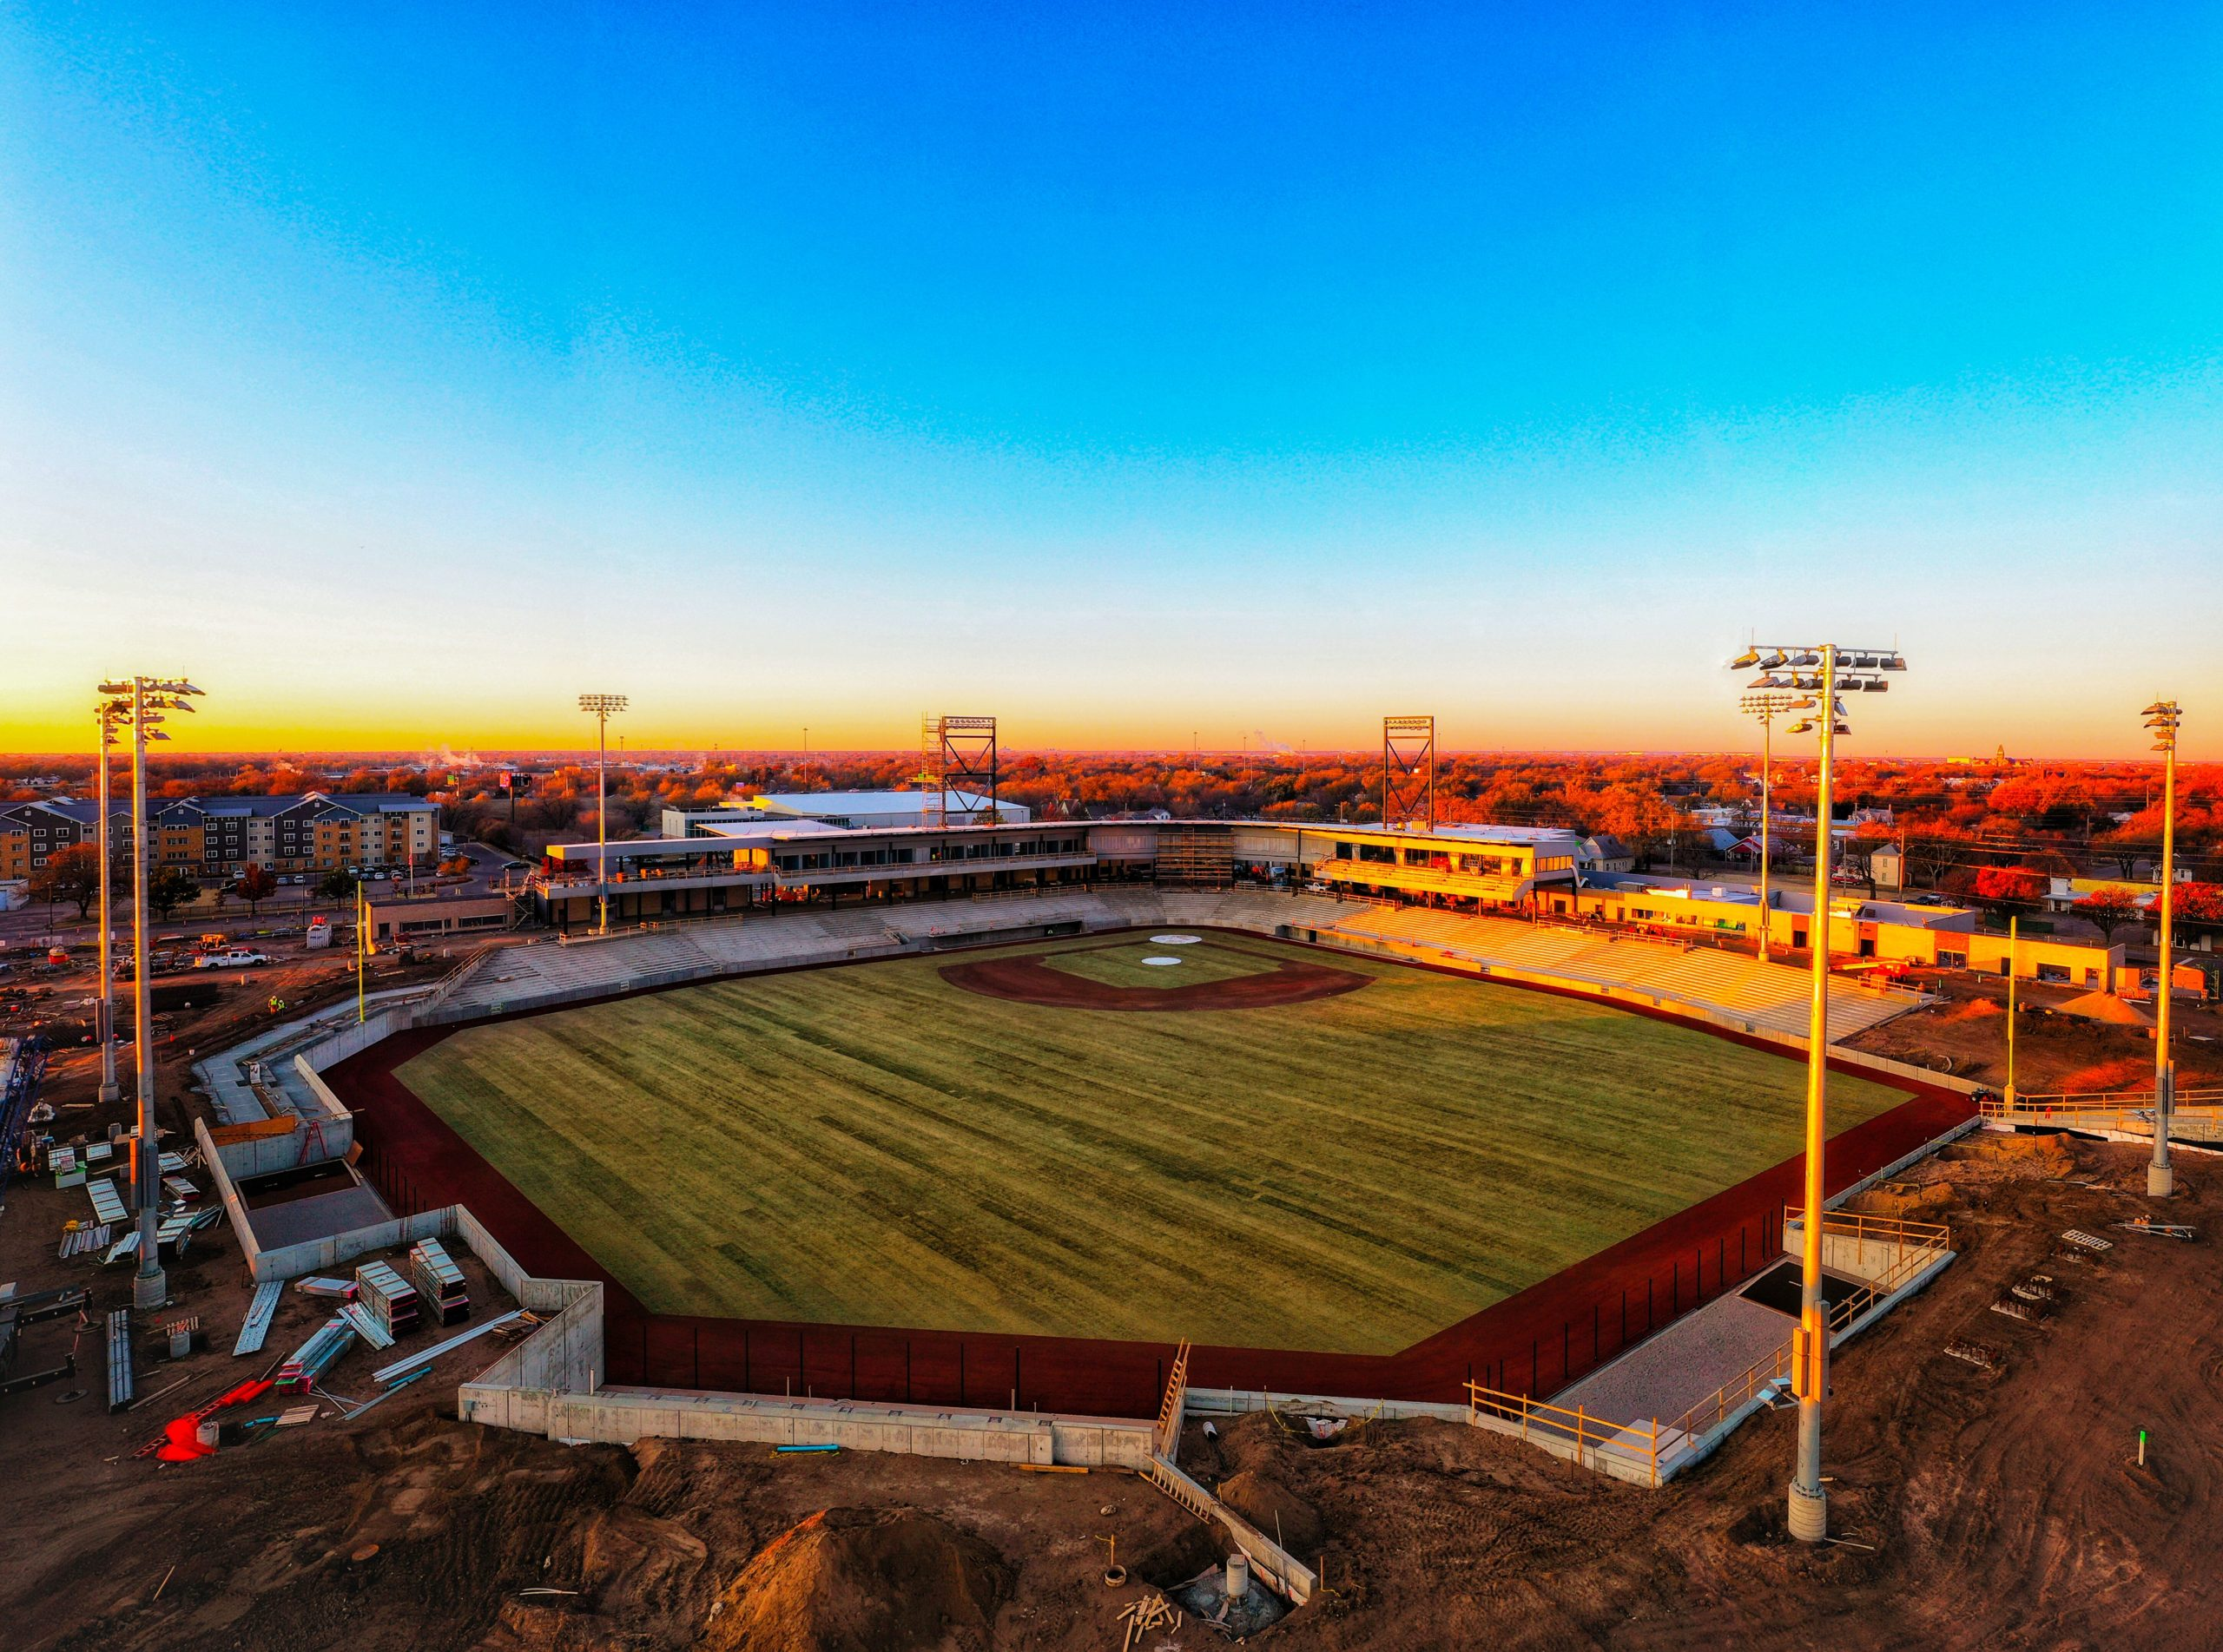 Wichita Baseball Stadium_ credit Drone-Tography LLC